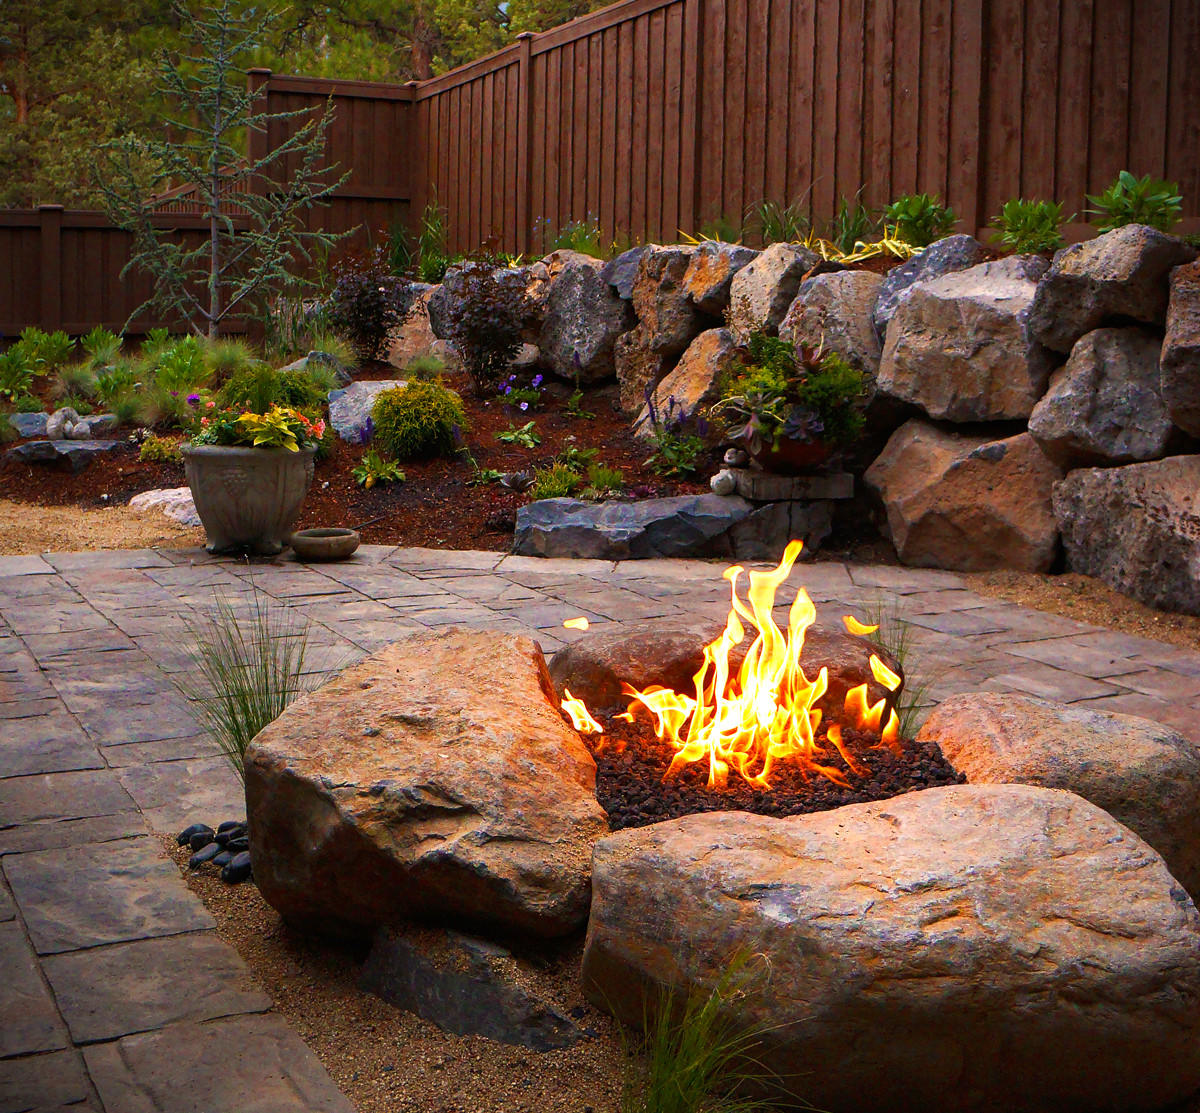 Fireplace Fire Pit  Fire Pits and Outdoor Fireplaces